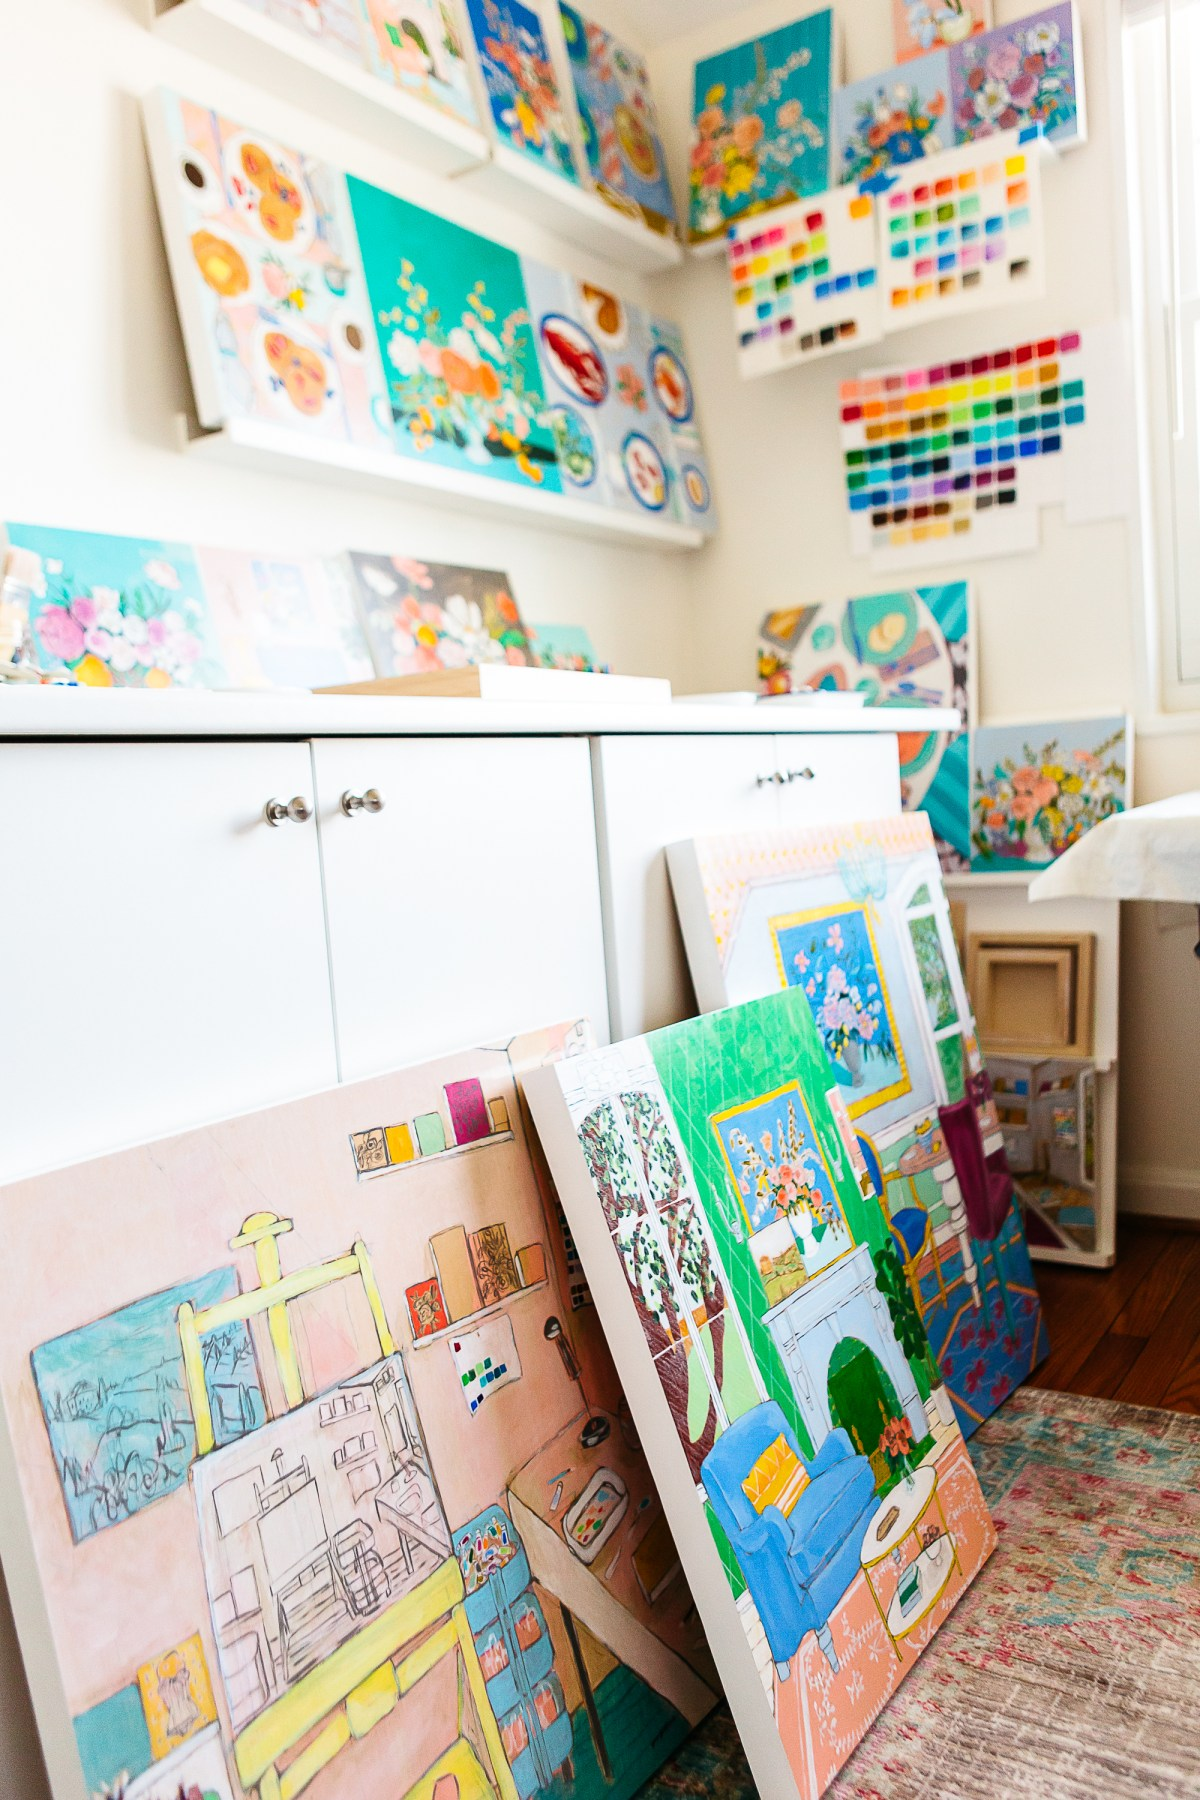 Inside the artist's studio, works by Jennifer Allevato lean against a cabinet and are displayed on shelves on the wall above.